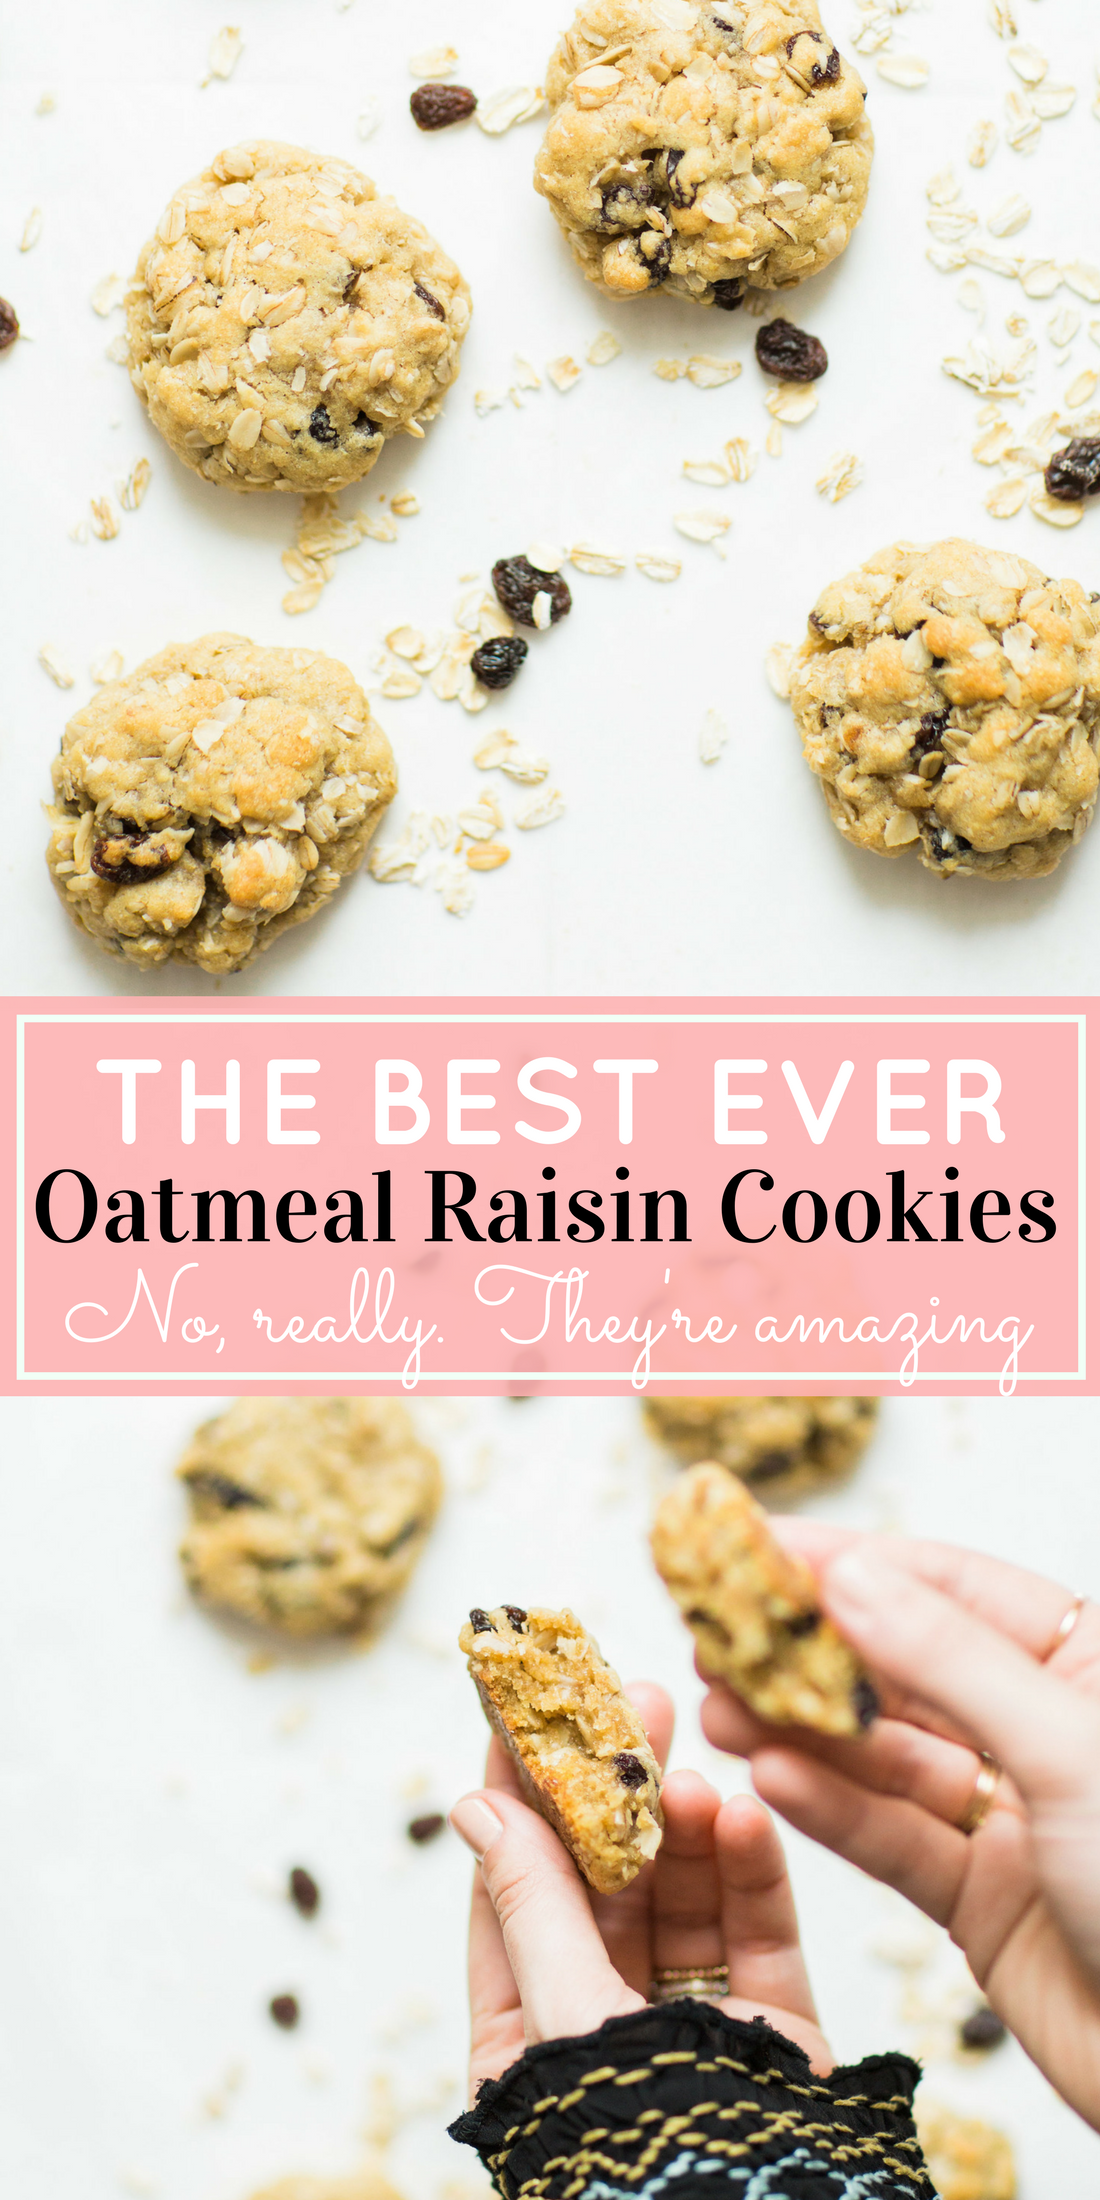 I've found the perfect oatmeal cookies for our family. Crispy on the outside and super soft on the inside, they taste just slightly under-baked; and, bonus - they're dairy-free and can be made gluten-free.Click through for the recipe. | glitterinc.com | @glitterinc